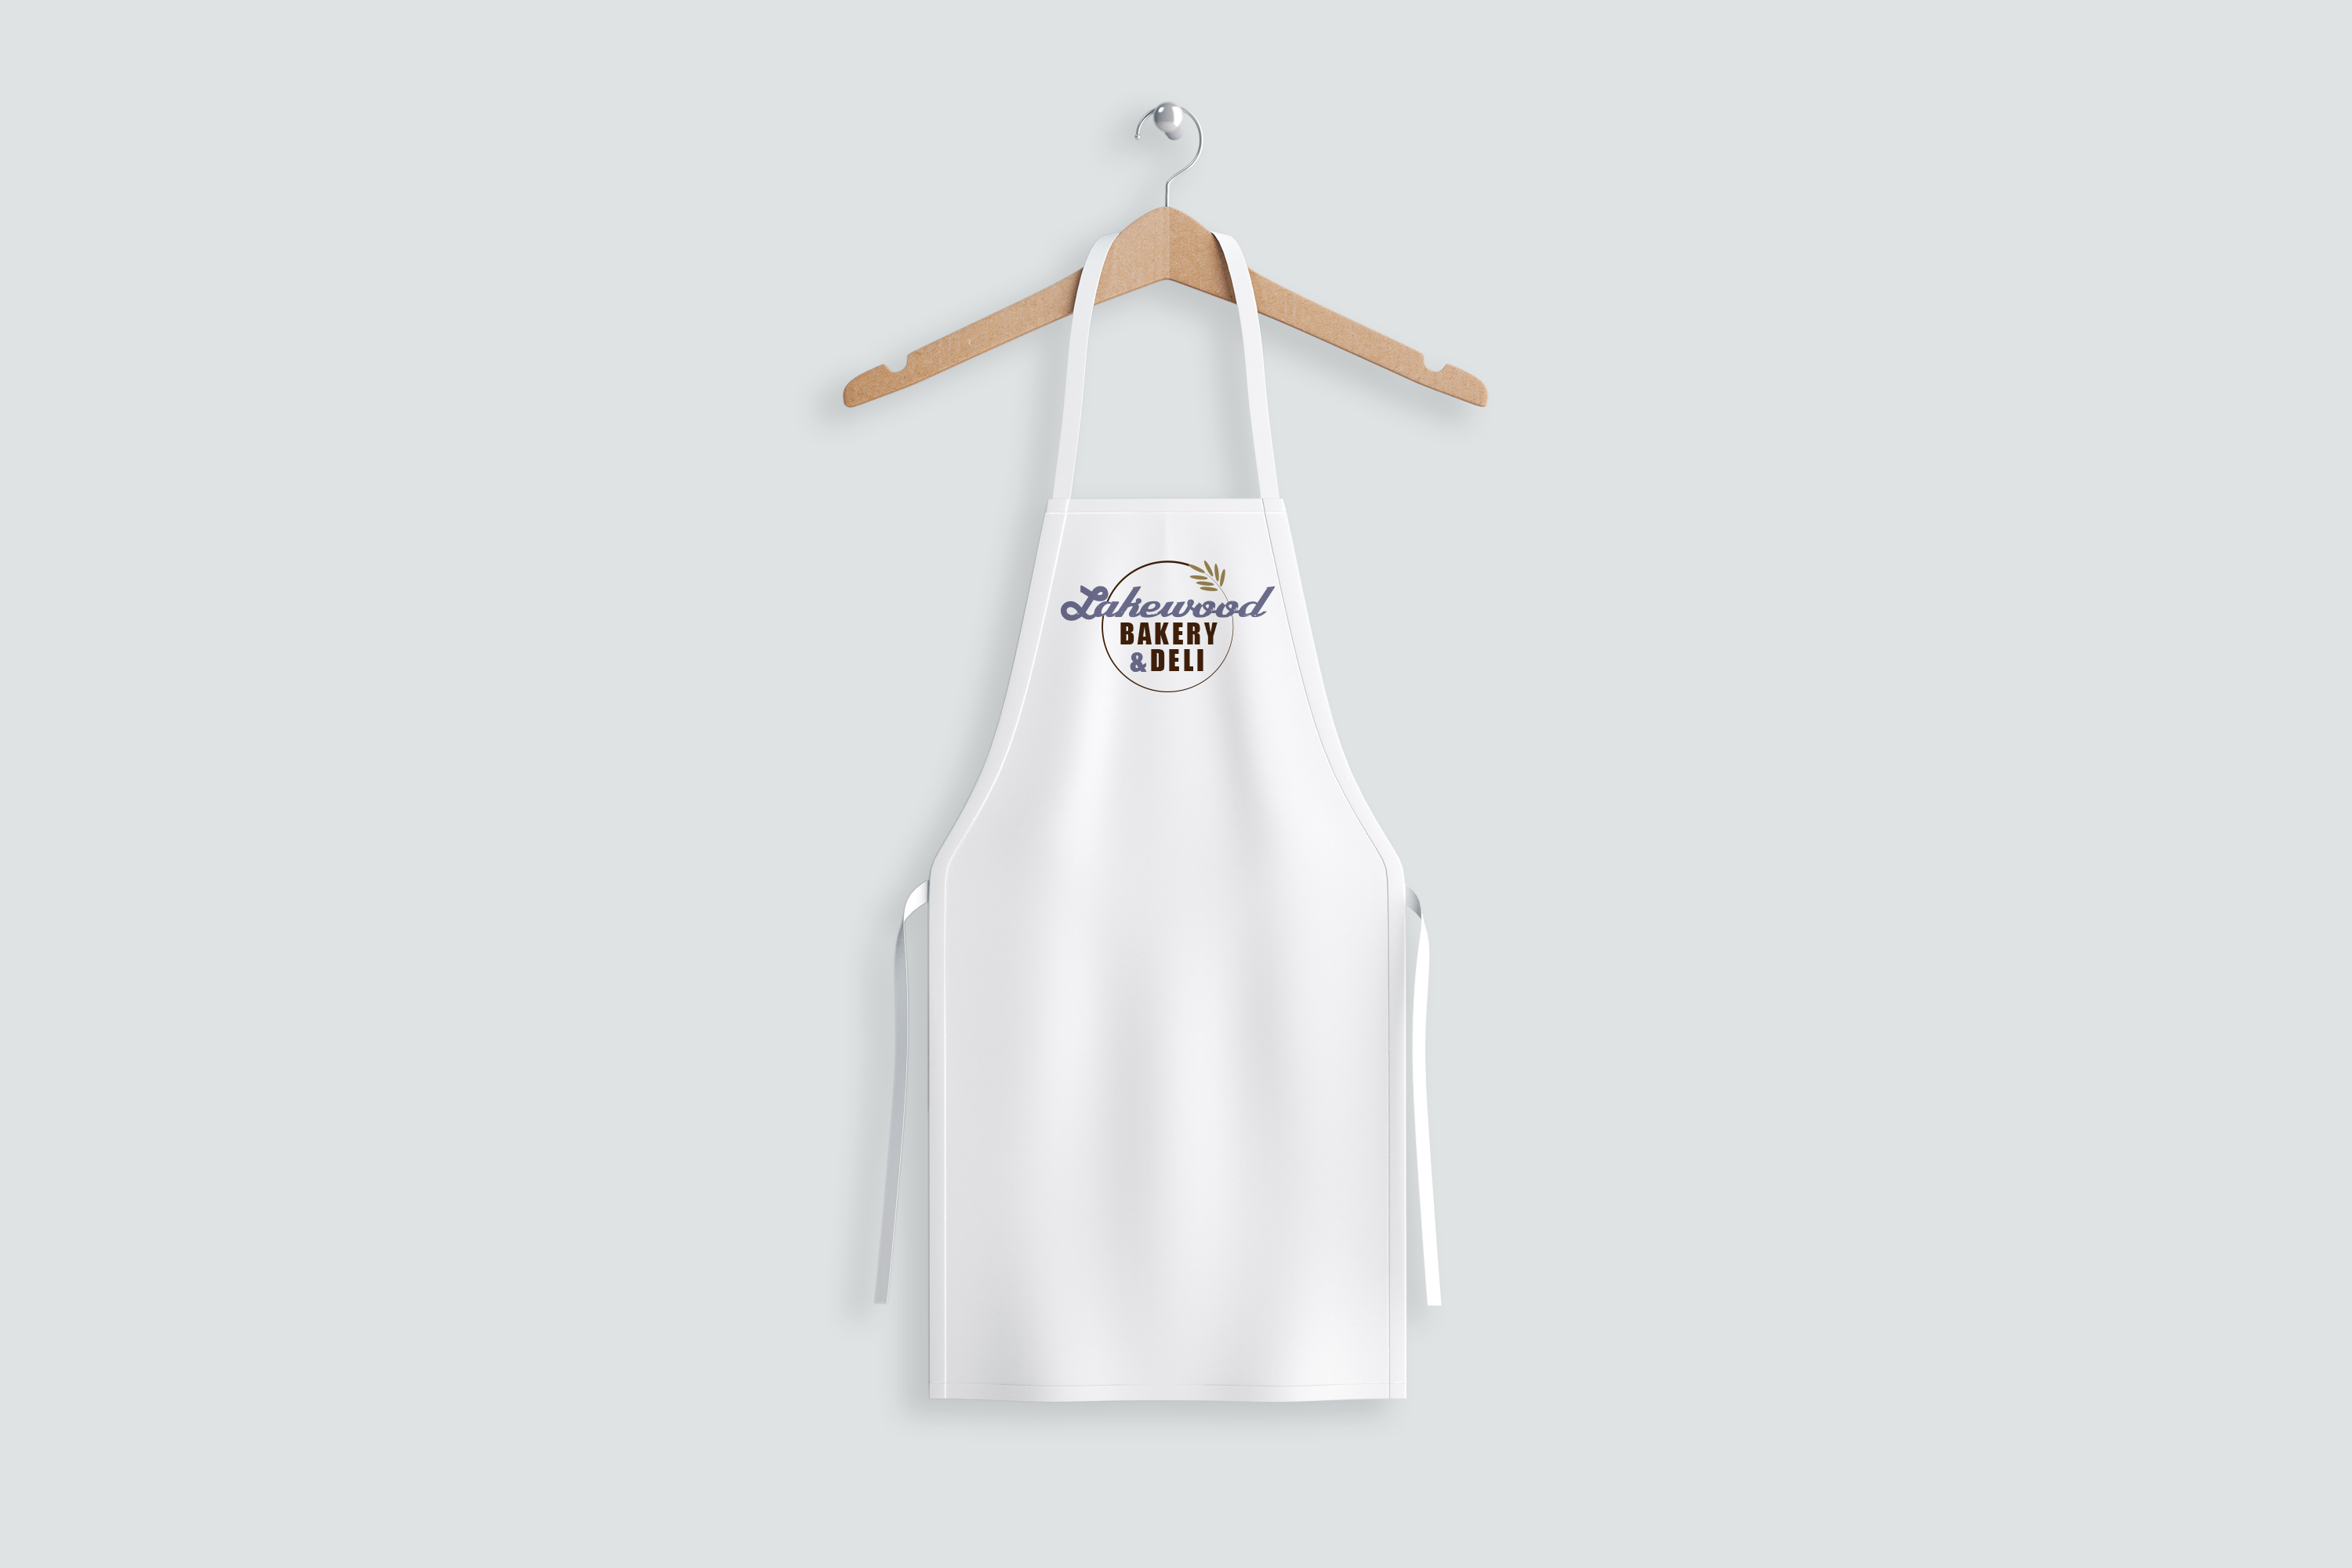 Lakewood Bakery and Deli Logo printed on apron